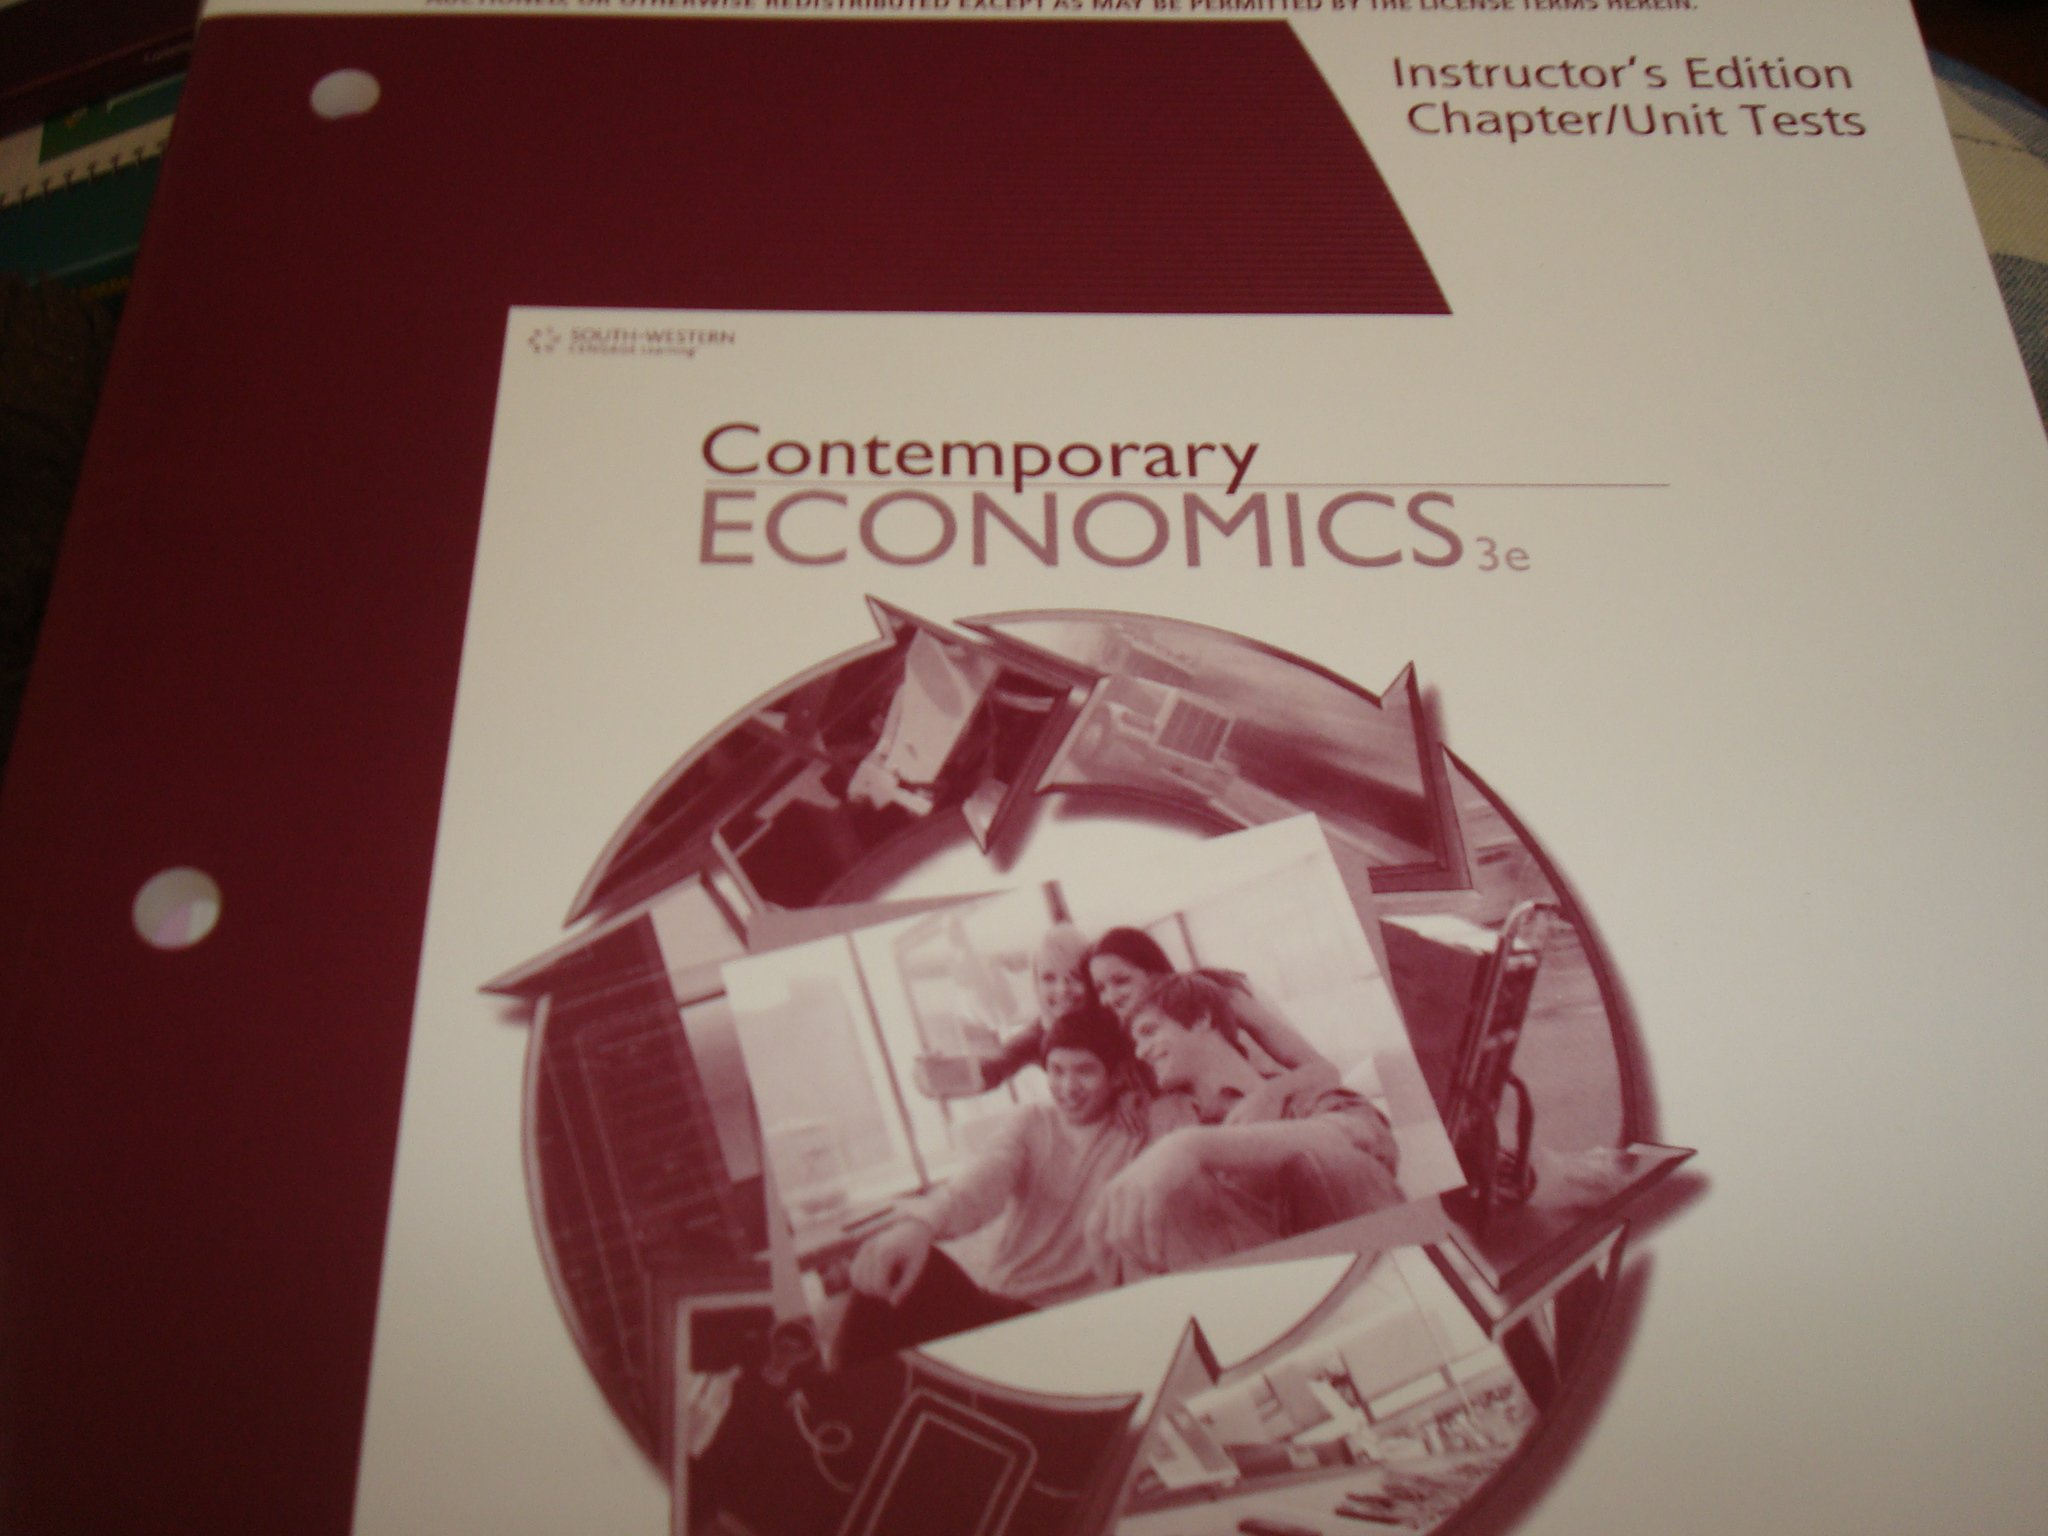 Contemporary Economics 3rd Edition: Instructor's Edition Chapter/Unit Tests pdf epub